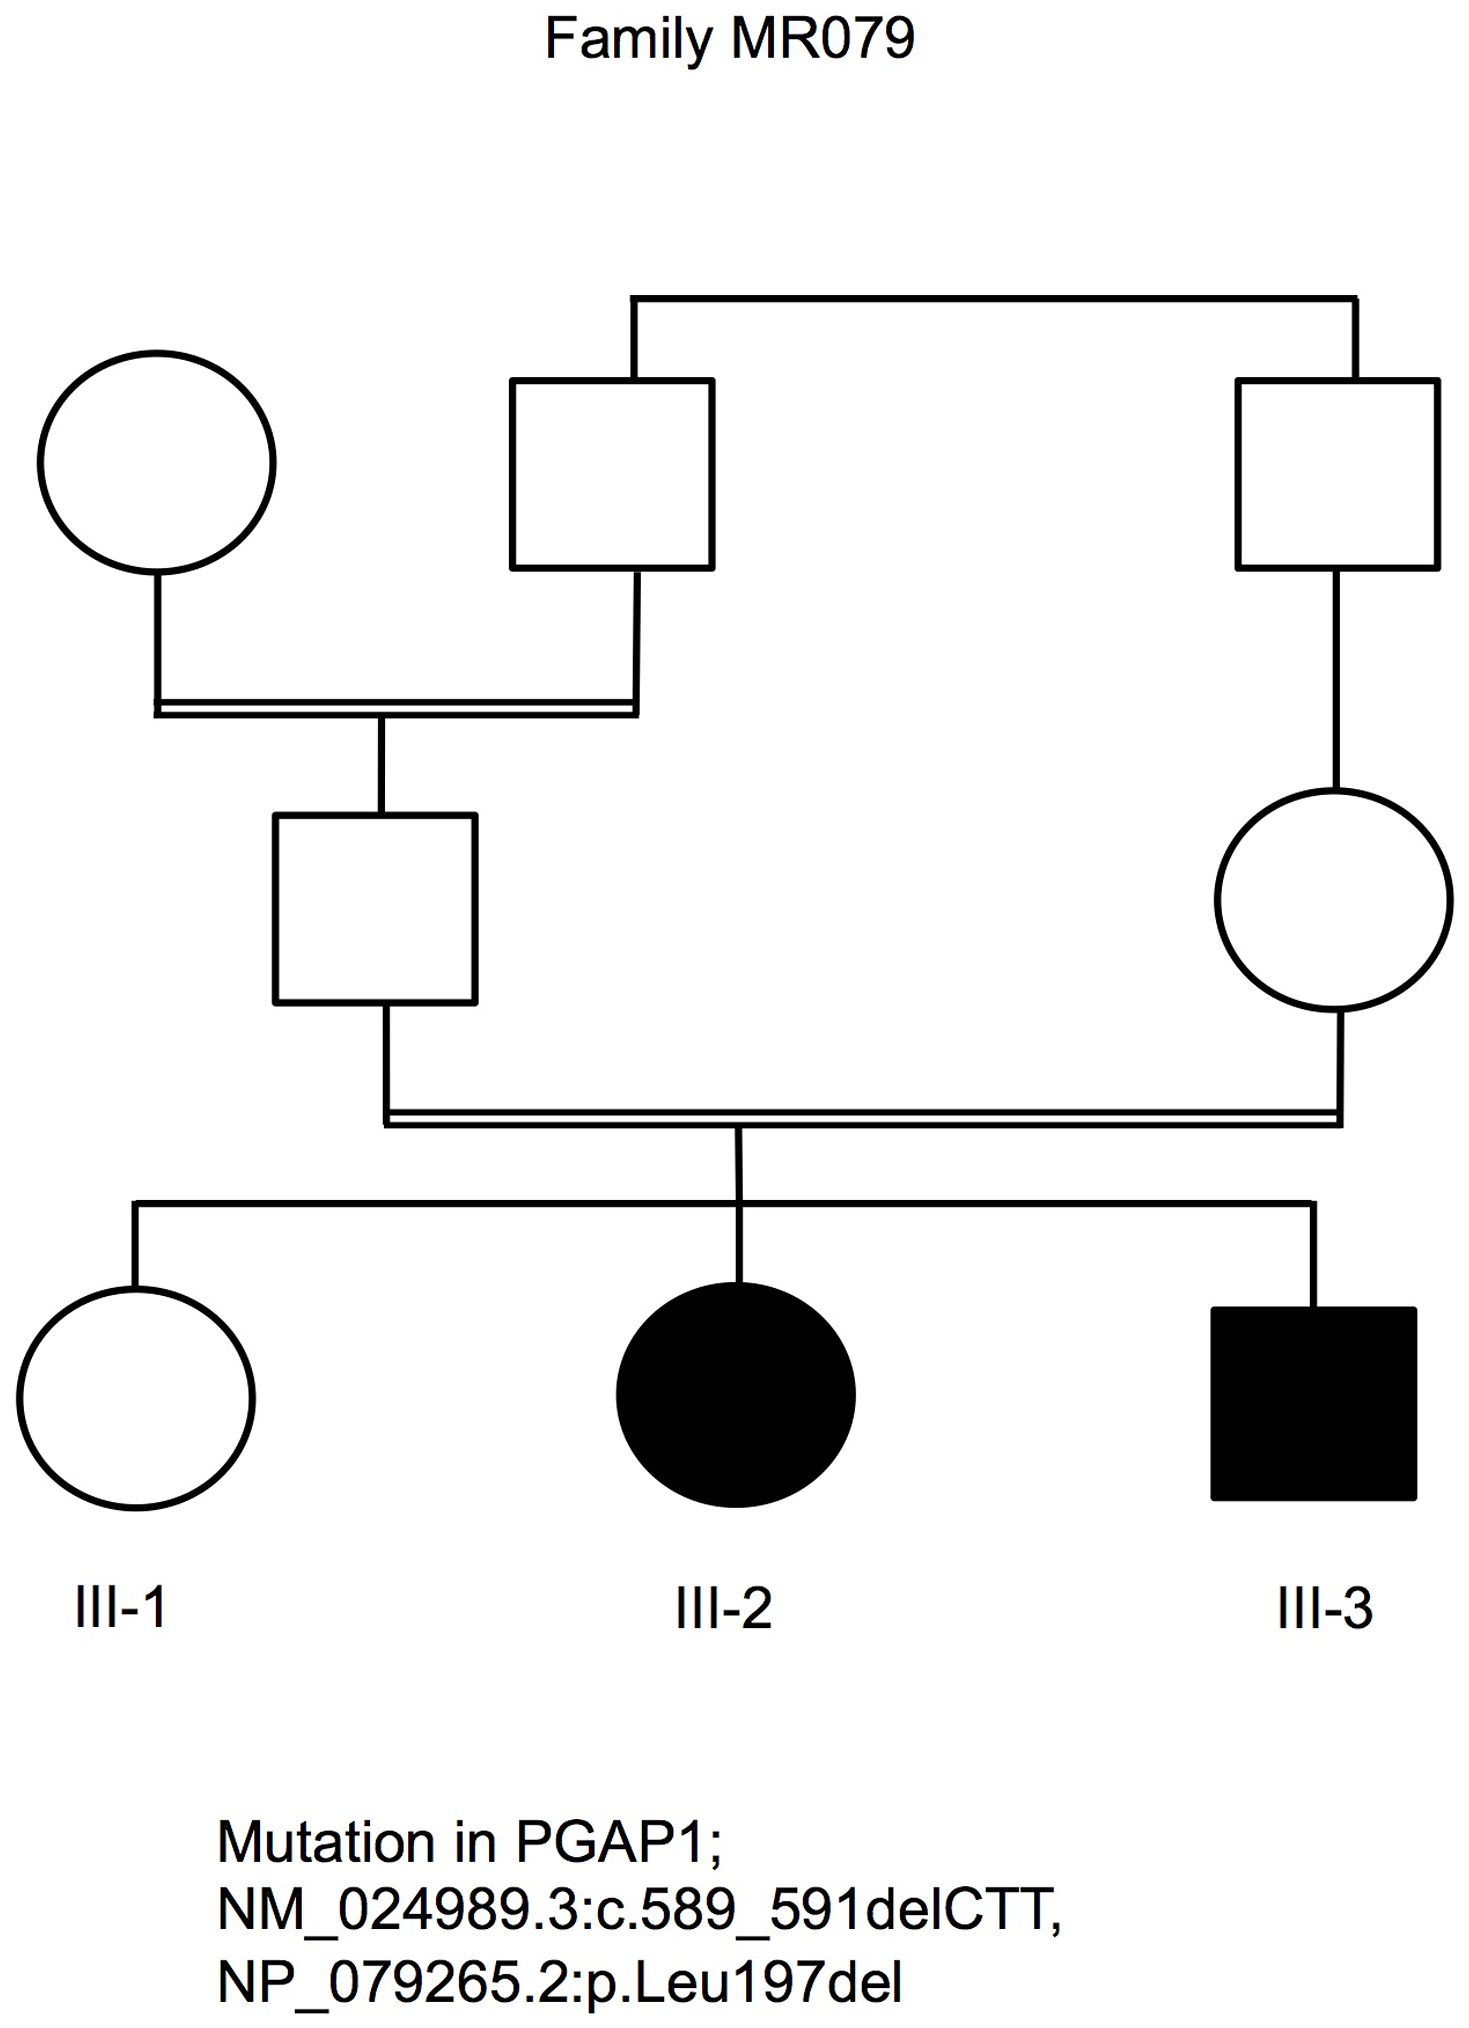 Pedigree of family MR079 and a PGAP1 mutation.